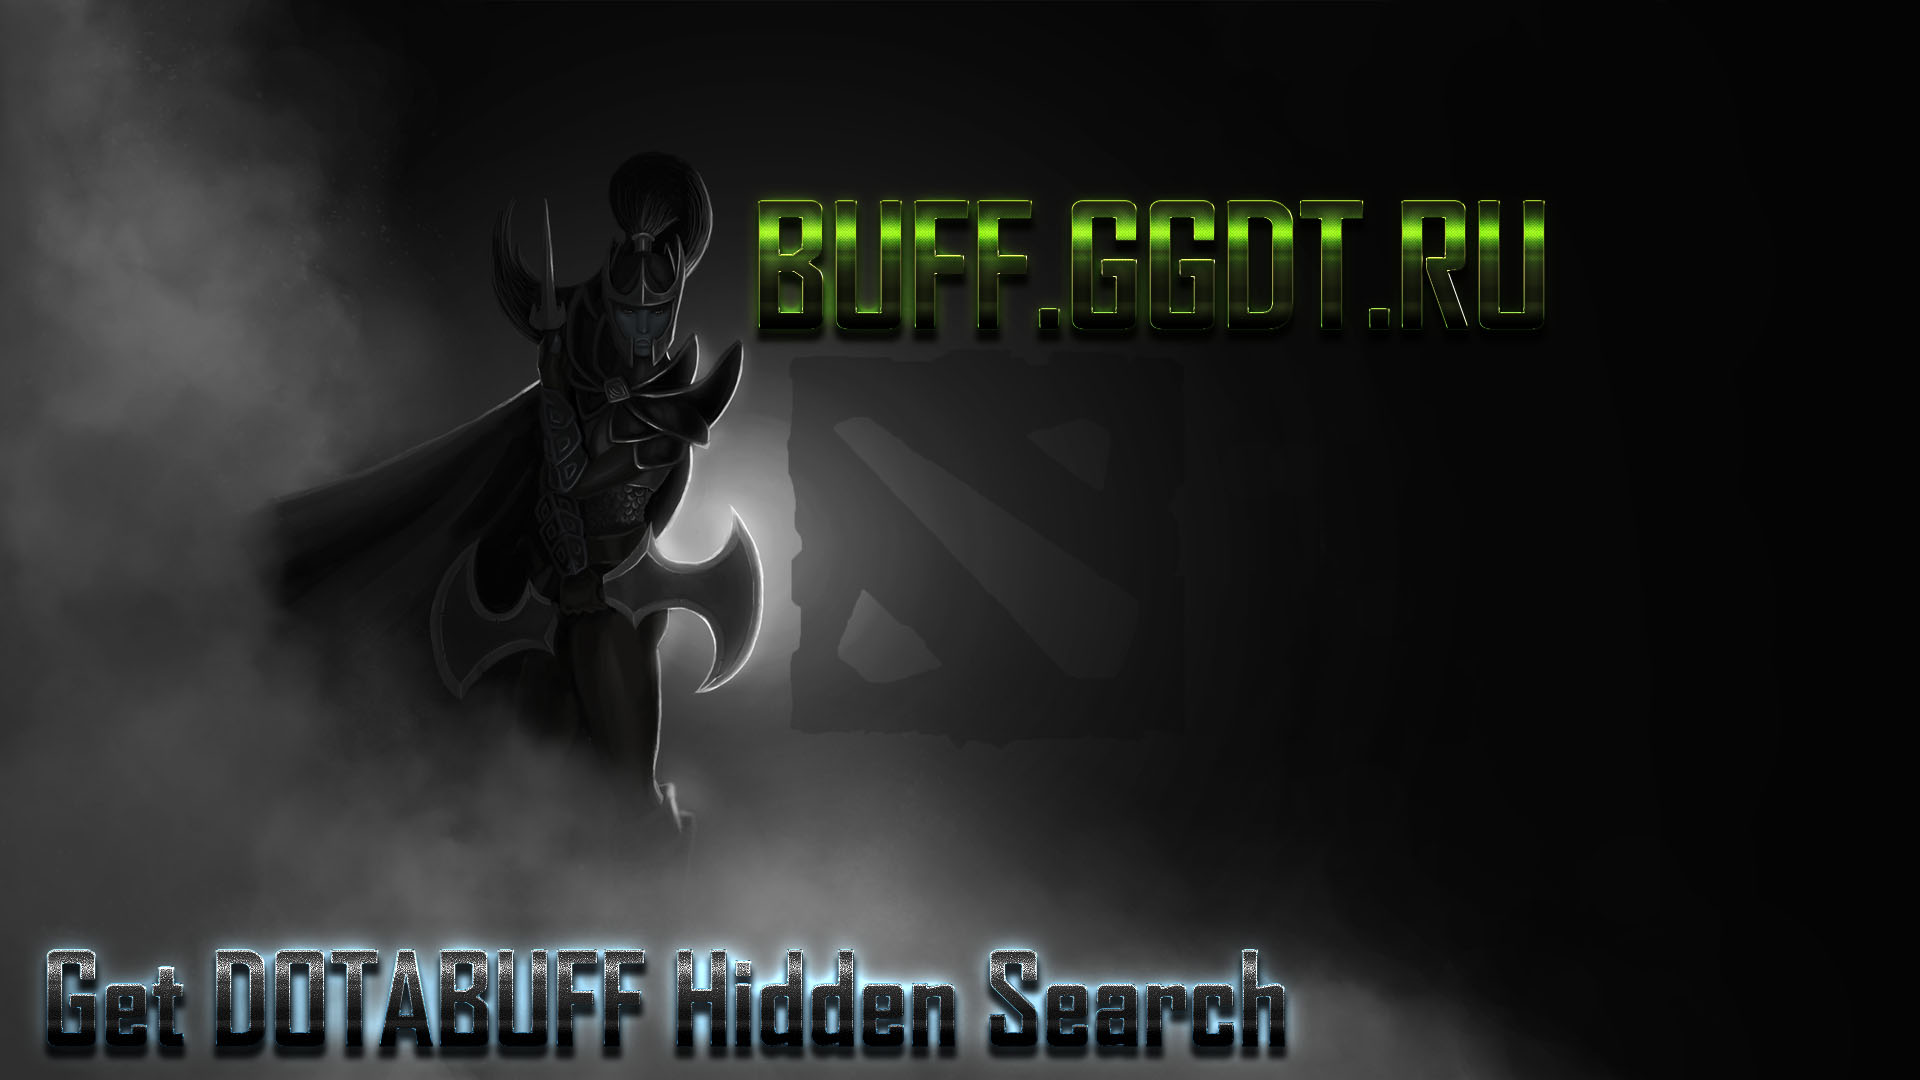 Steam Community :: Guide :: Get DOTABUFF Hidden Search